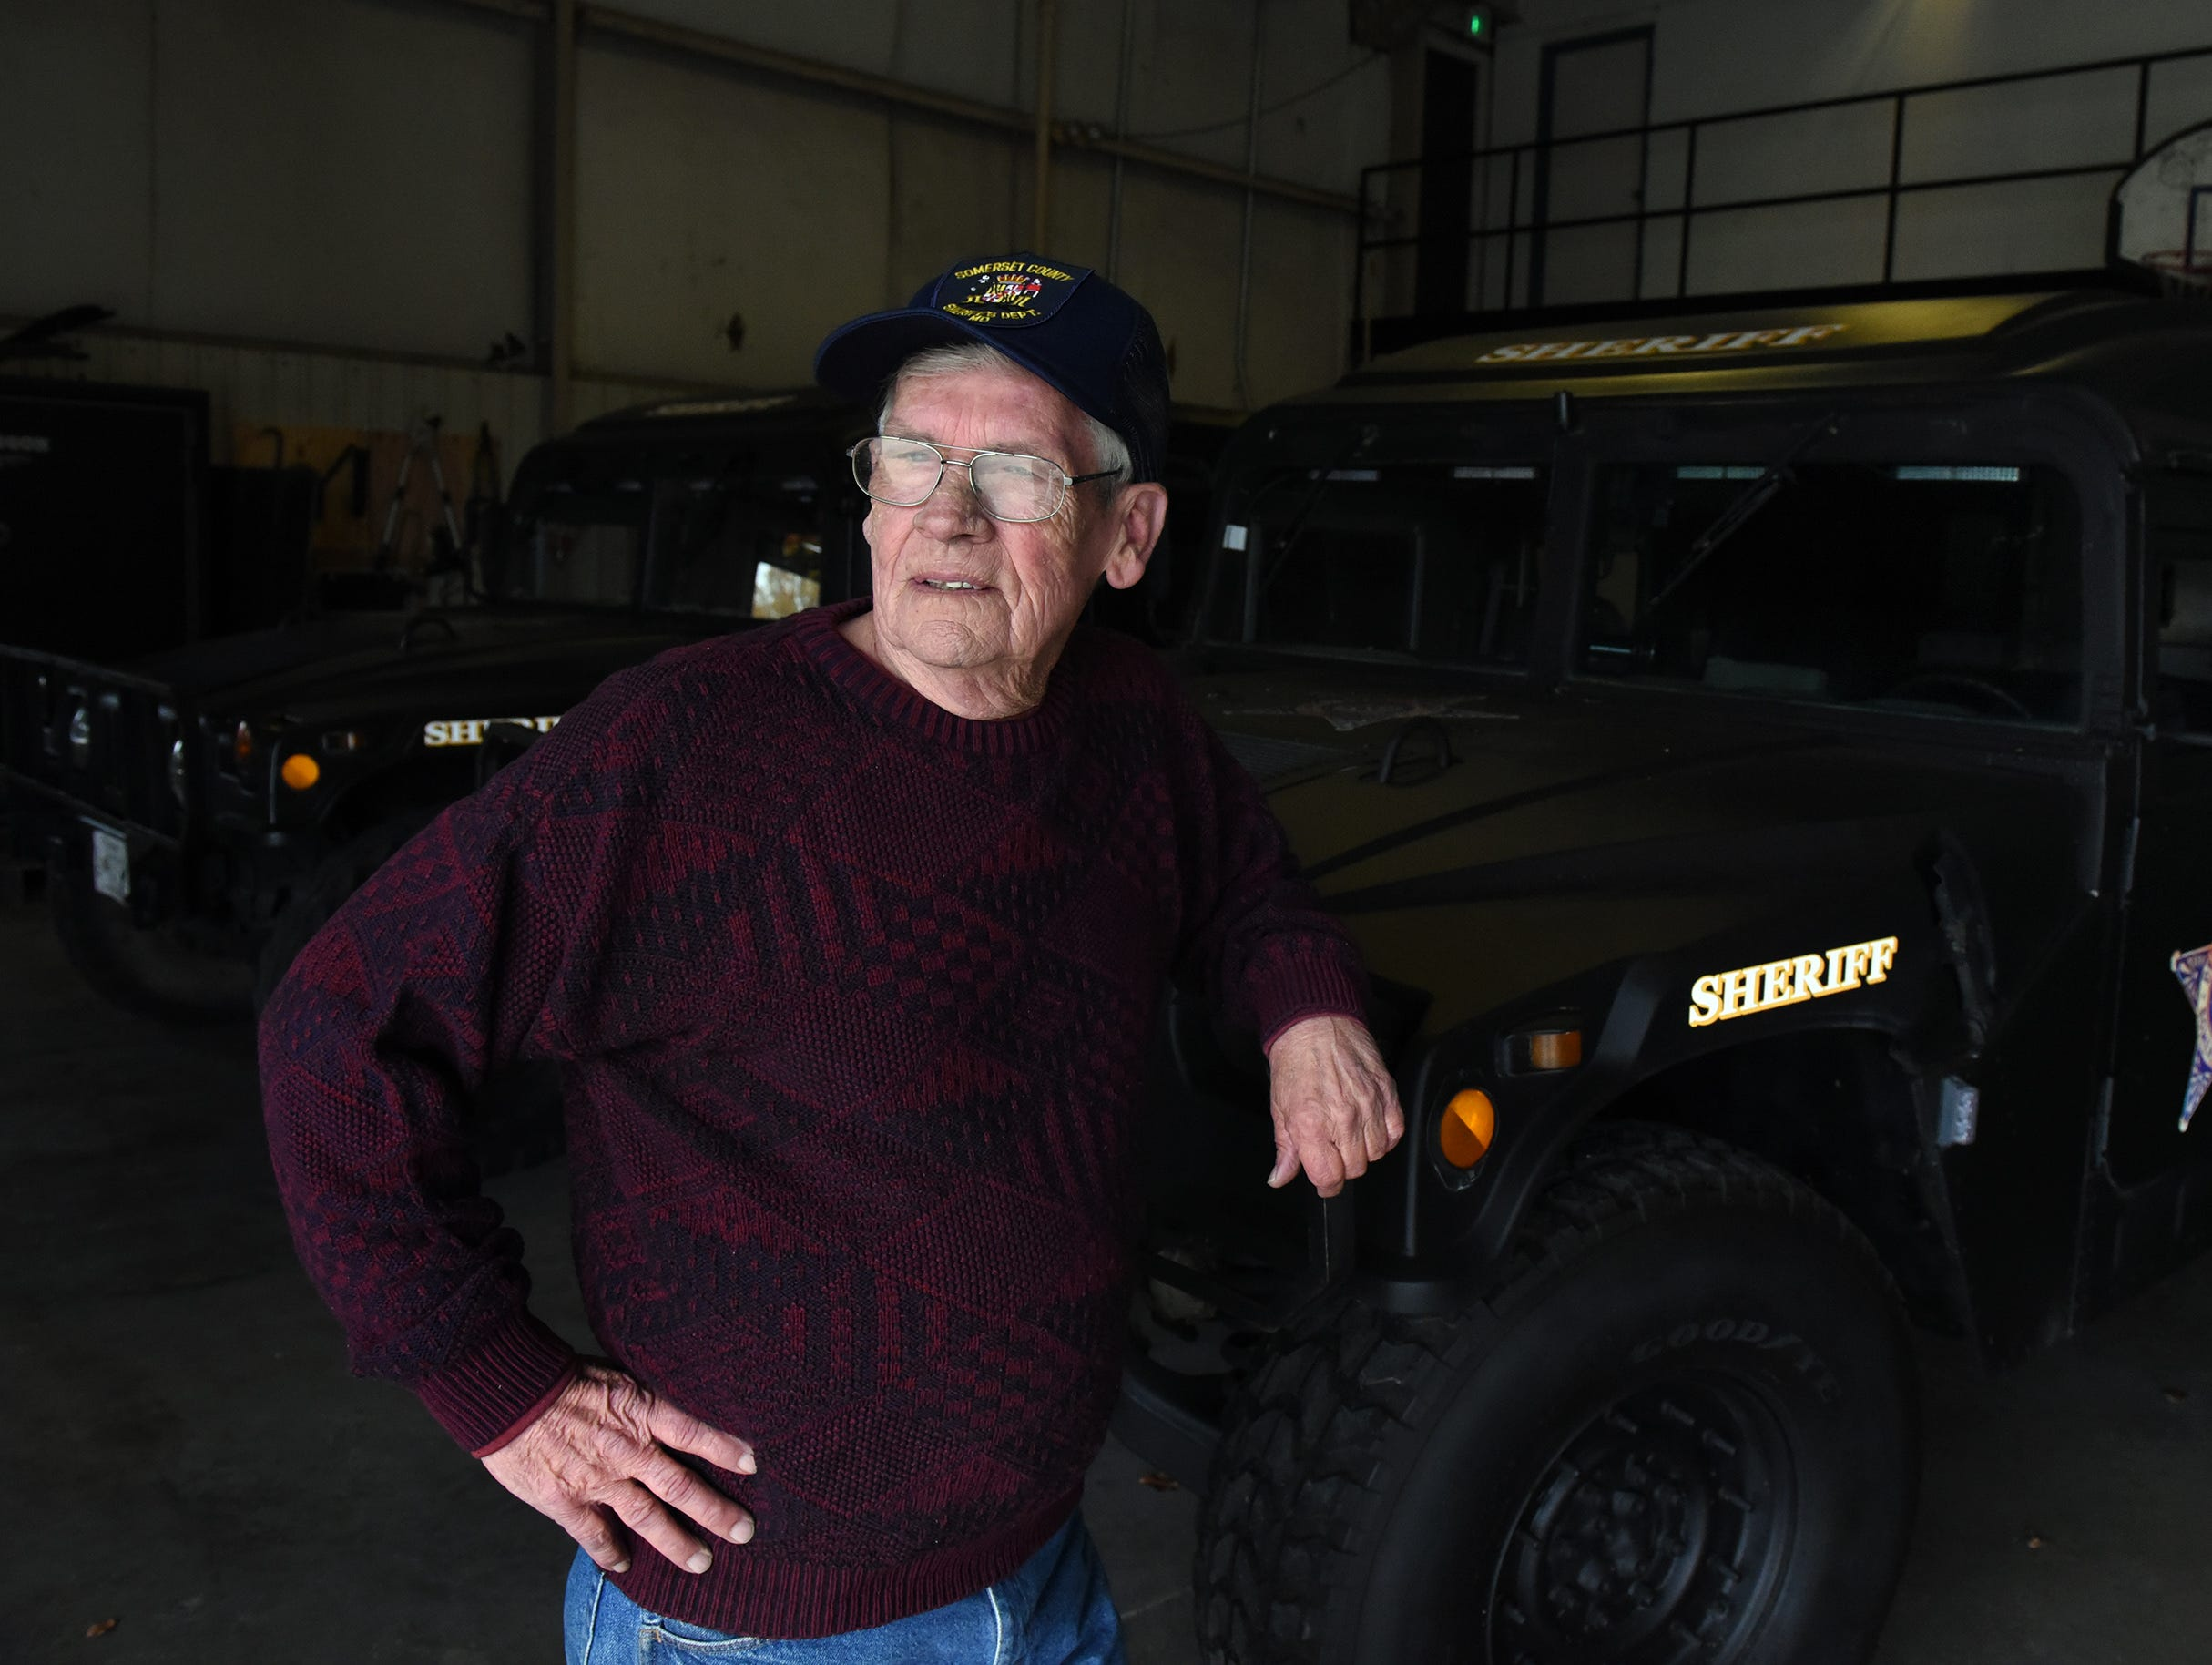 """Somerset County Sheriff Robert """"Bobby"""" Jones stands by one of the department's Humvees a few days before he started his retirement in 2014."""